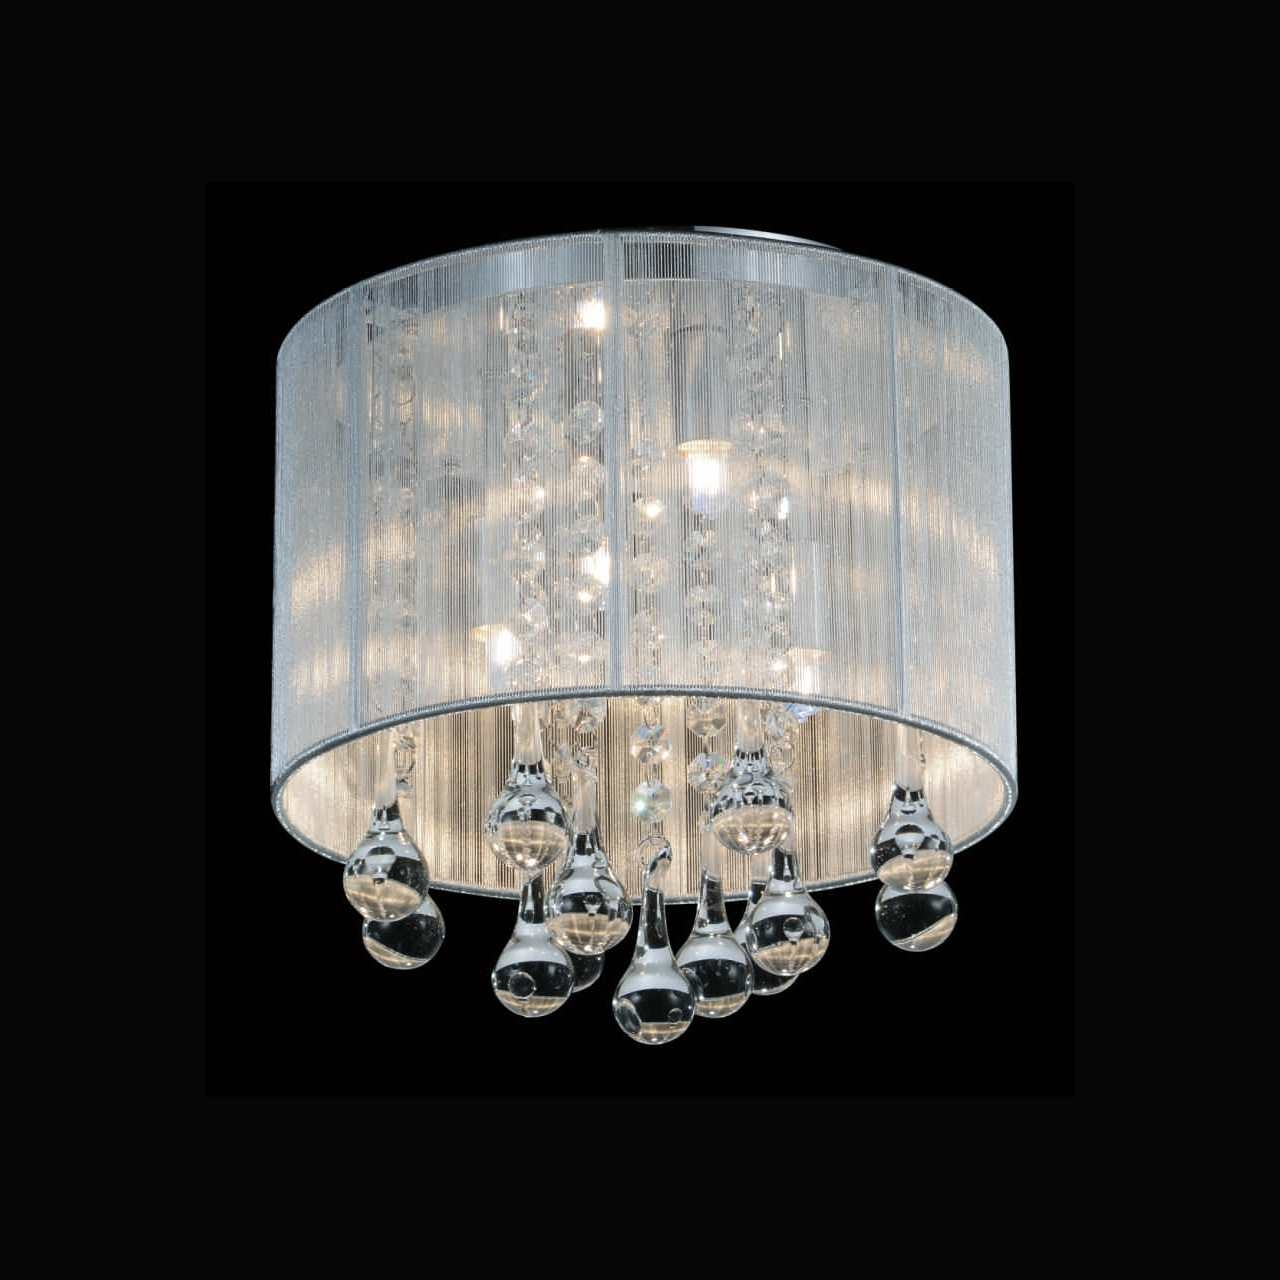 Brizzo Lighting Stores 10 Gocce Modern Crystal Round Flush Mount Regarding 4Light Chrome Crystal Chandeliers (Image 4 of 25)